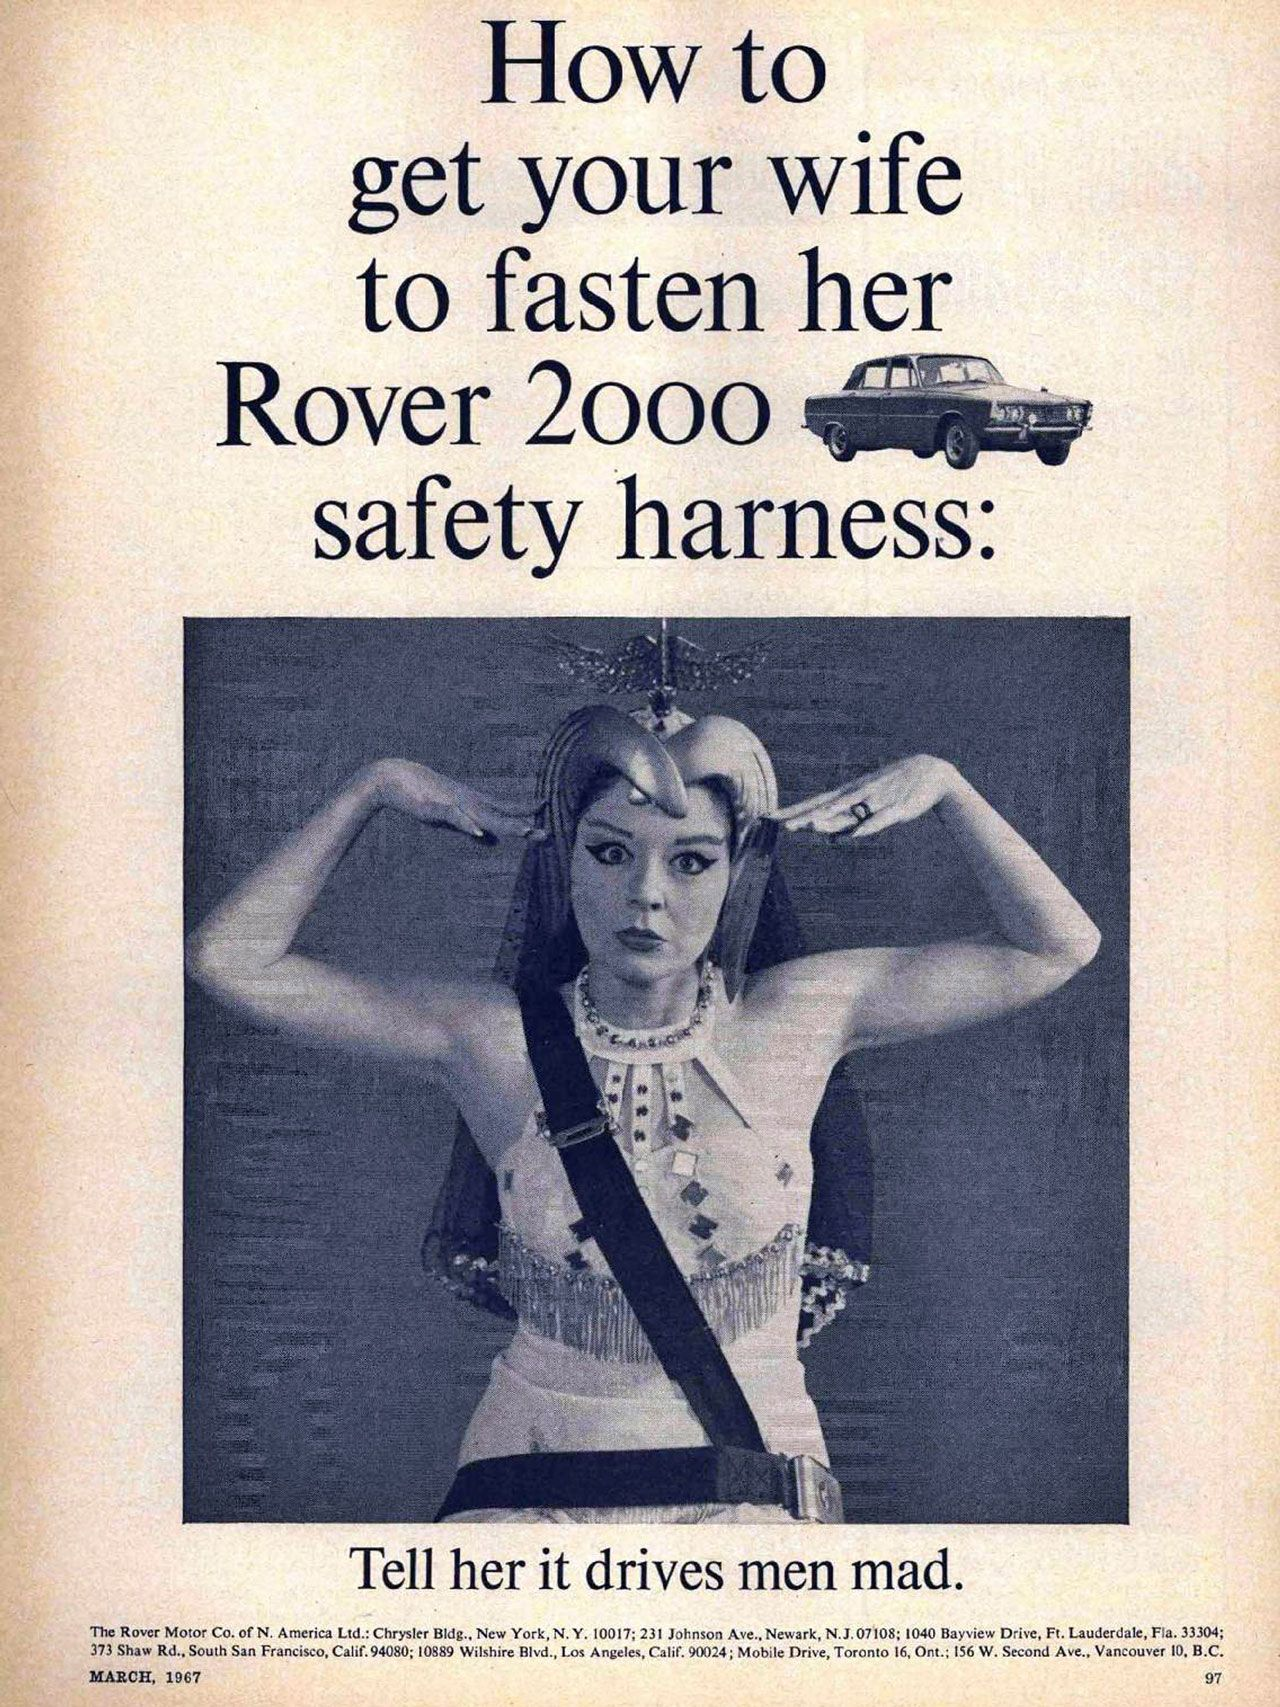 How to get your wife to fasten her Rover 2000 safety harness: tell her it drives men mad.